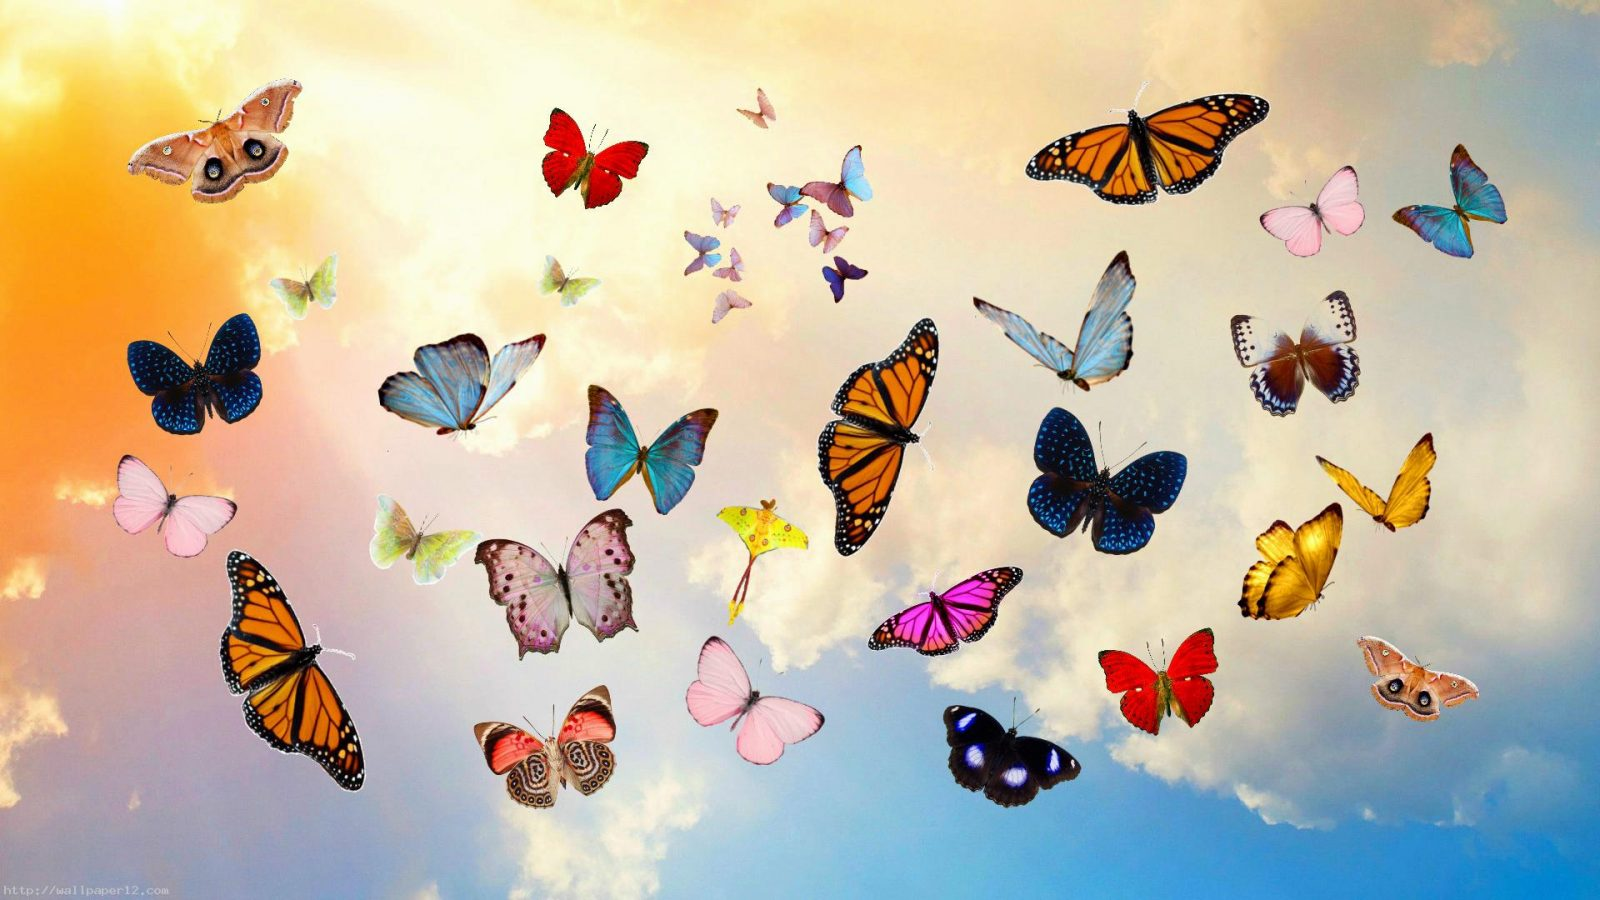 9-different-colors-butterfly-wallpaper-1920x1080-1600x900.jpg